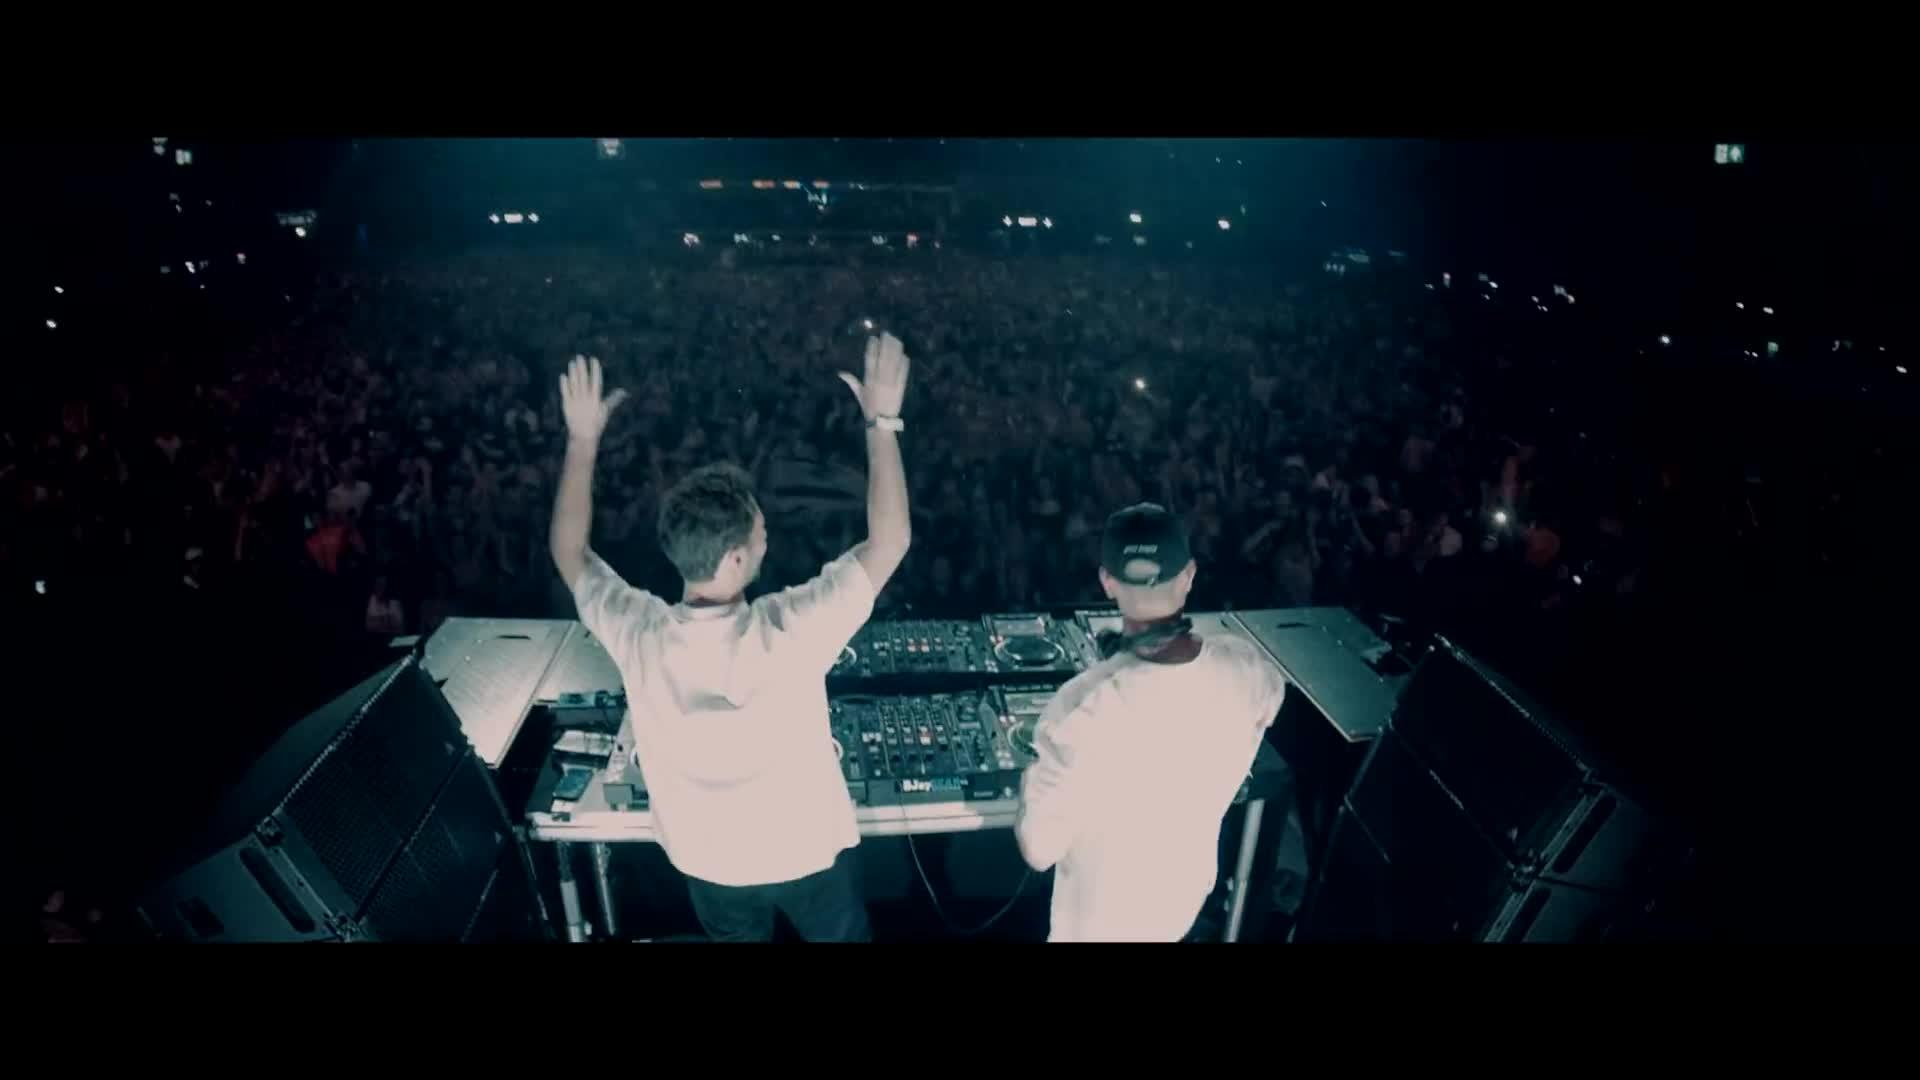 Martin Garrix, Matisse & Sadko & Michel Zitron - Hold On